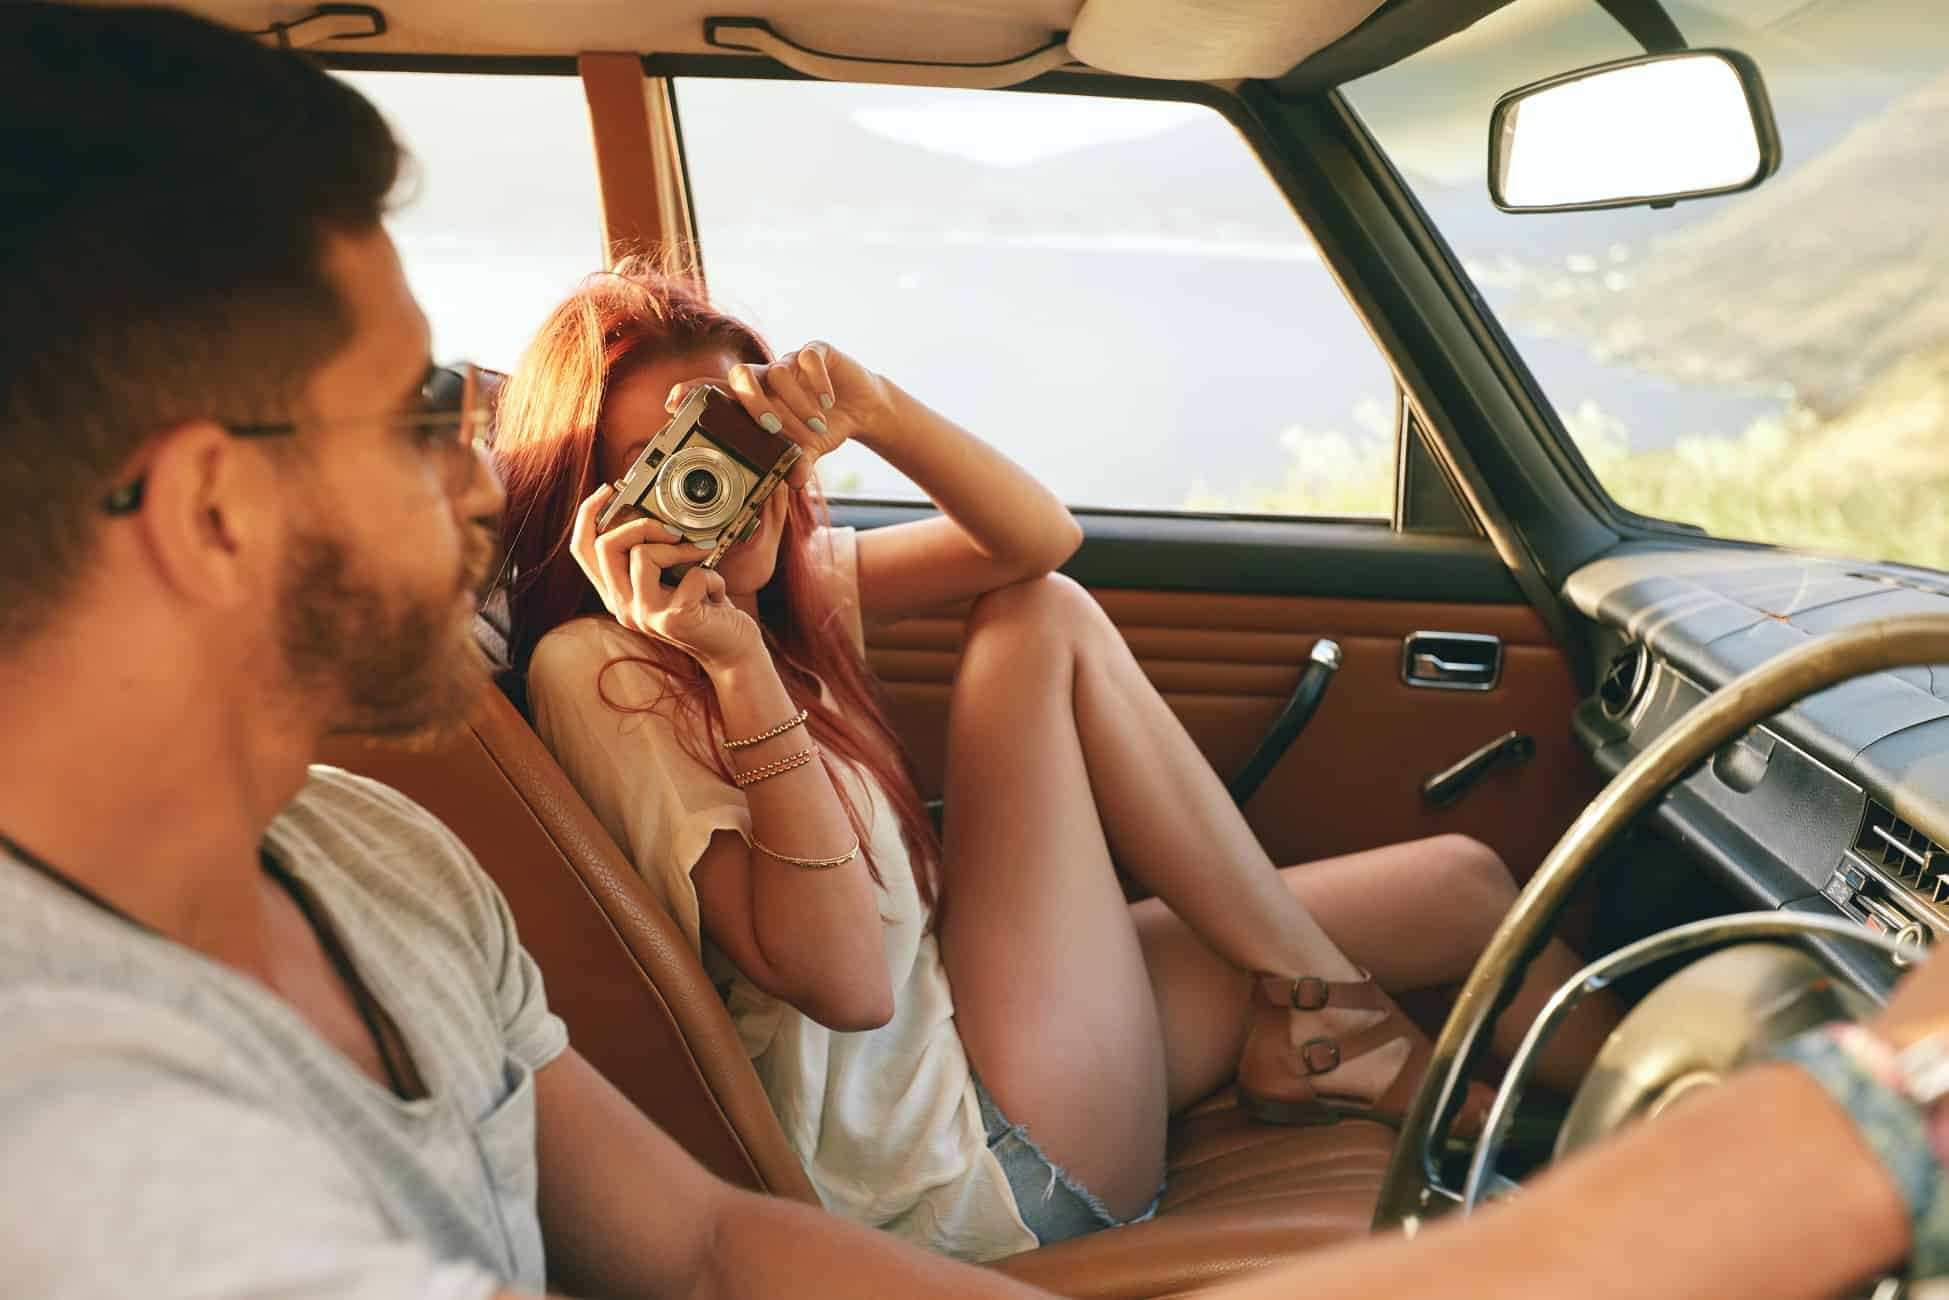 load shedding valentines road trip - Valentine's Day ideas: Don't let load shedding ruin the mood [photos]